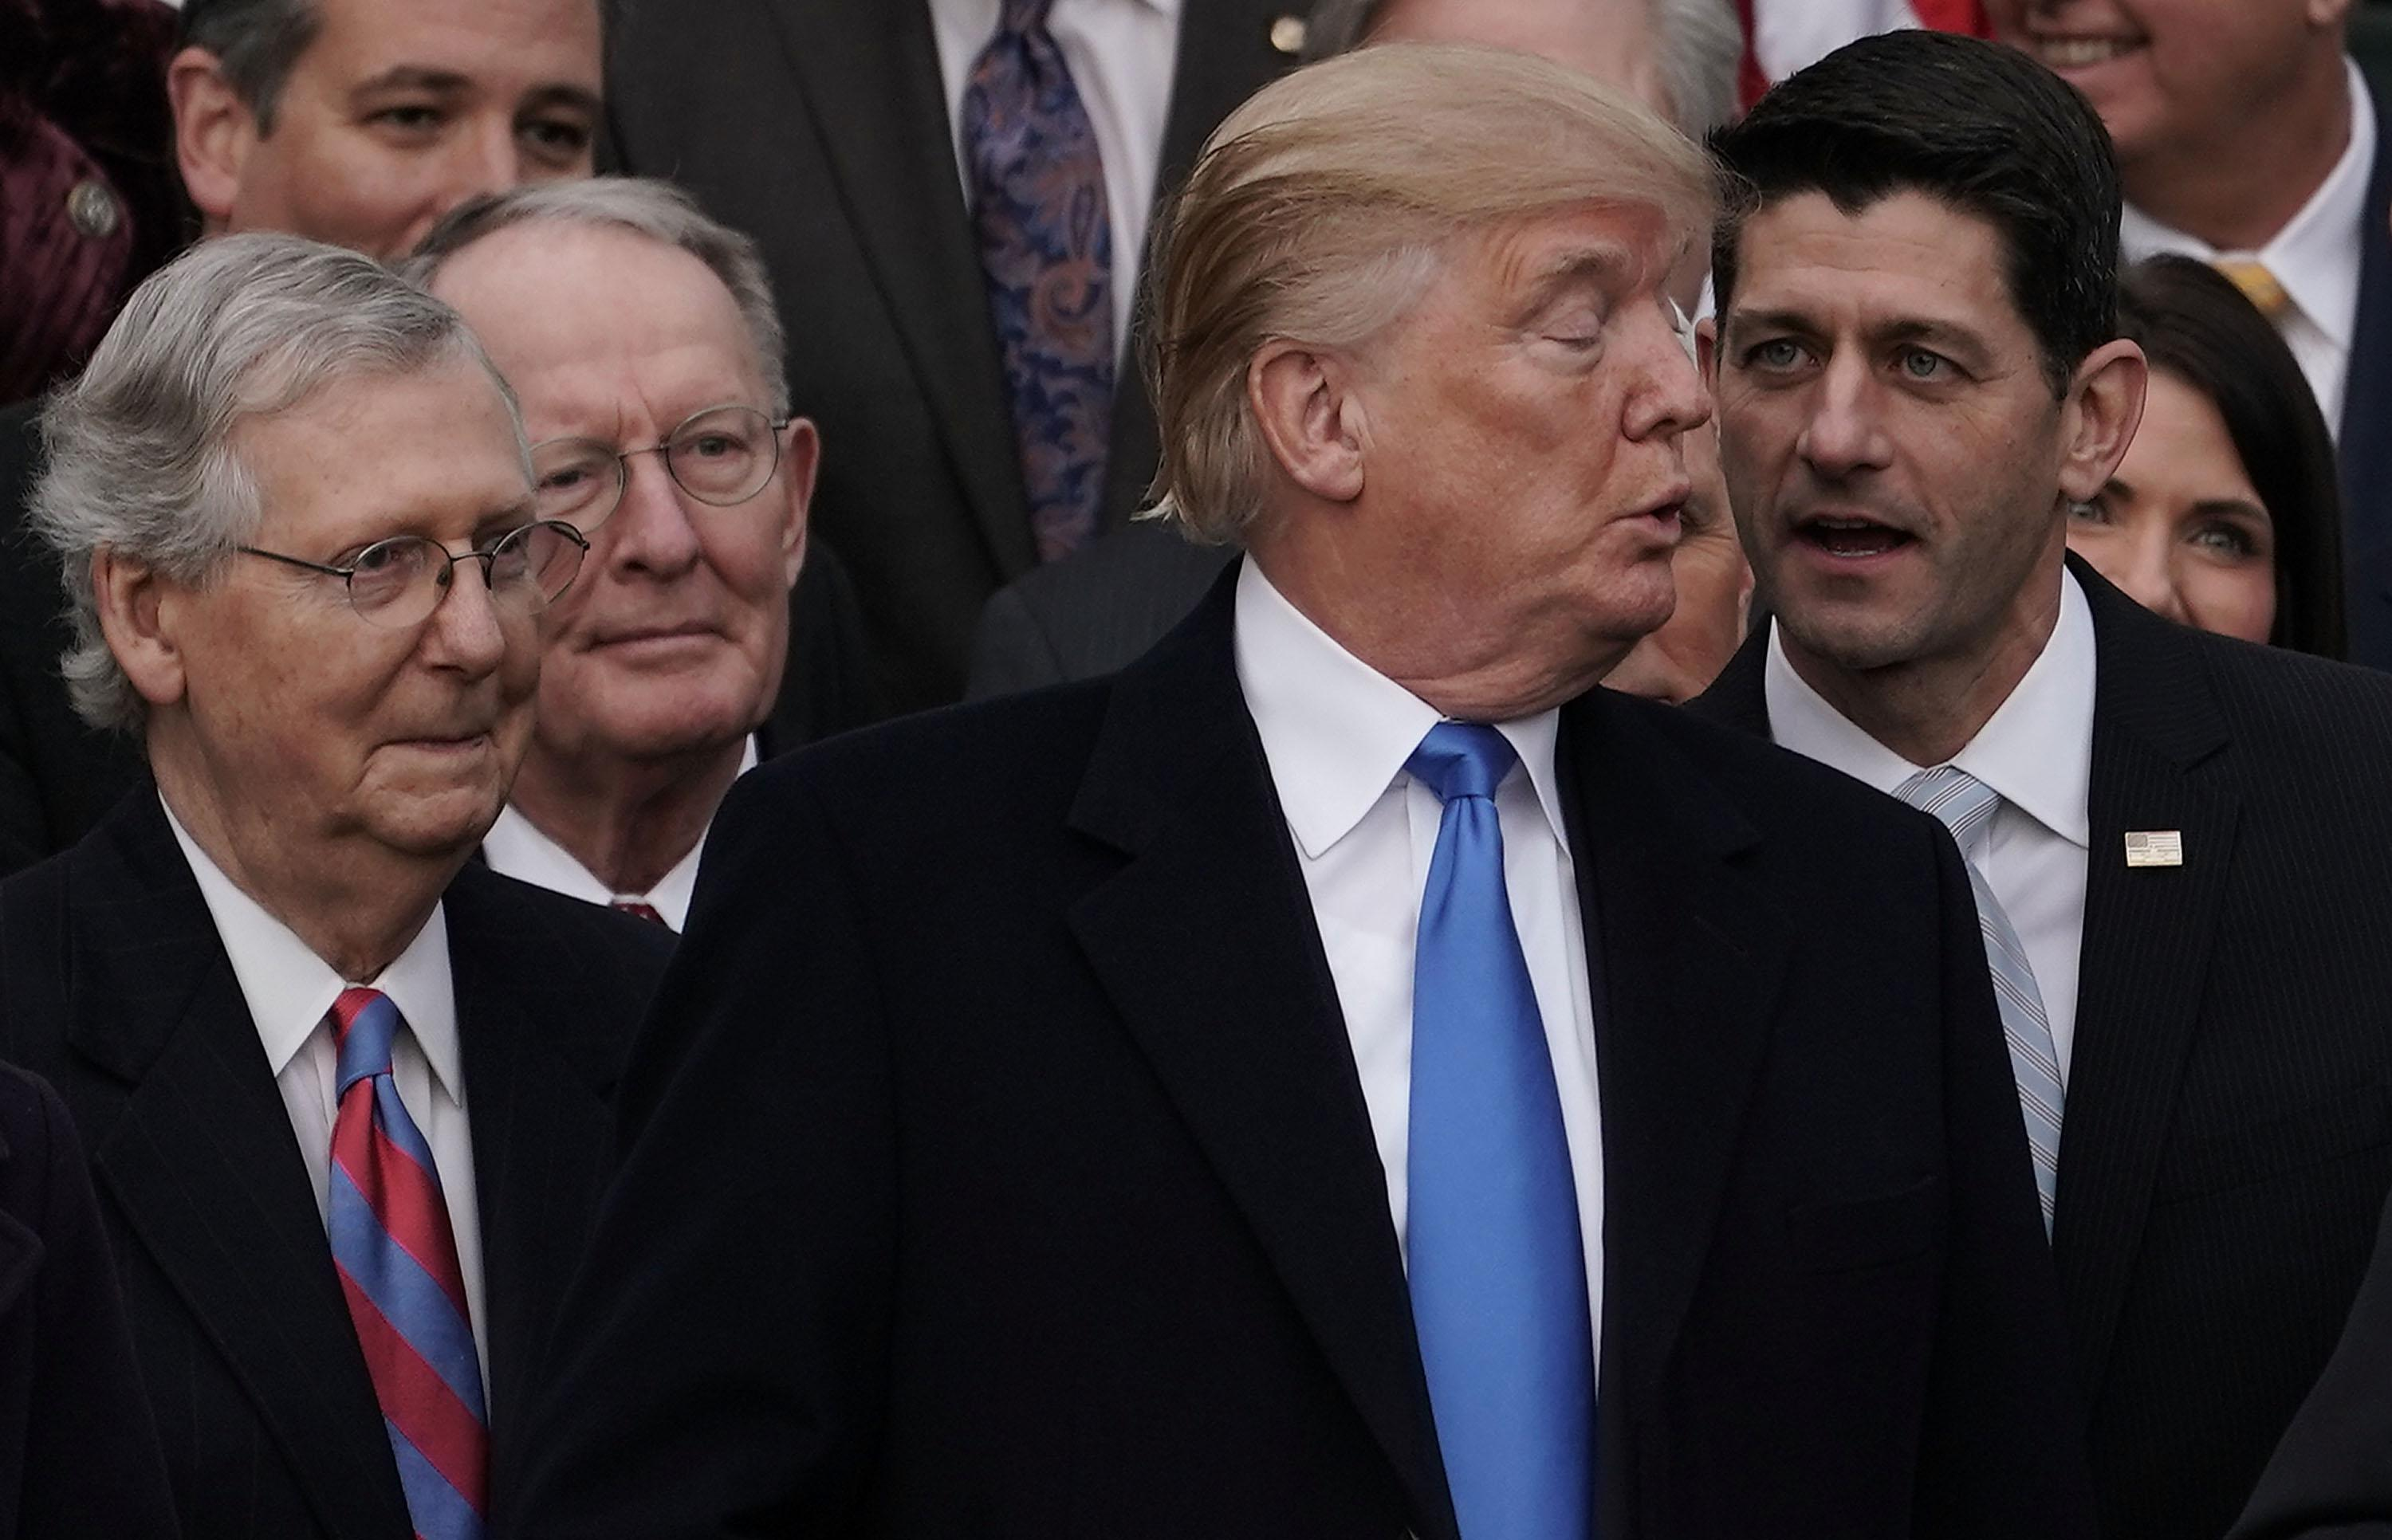 WASHINGTON, DC - DECEMBER 20:  U.S. Speaker of the House Rep. Paul Ryan (R-WI) talks to President Donald Trump (3rd L) as Senate Majority Leader Sen. Mitch McConnell (R-KY), and Sen. Lamar Alexander (R-TN) (2nd L) look on during an event to celebrate Congress passing the Tax Cuts and Jobs Act with Republican members of the House and Senate on the South Lawn of the White House December 20, 2017 in Washington, DC. The tax bill is the first major legislative victory for the GOP-controlled Congress and Trump since he took office almost one year ago.  (Photo by Alex Wong/Getty Images)